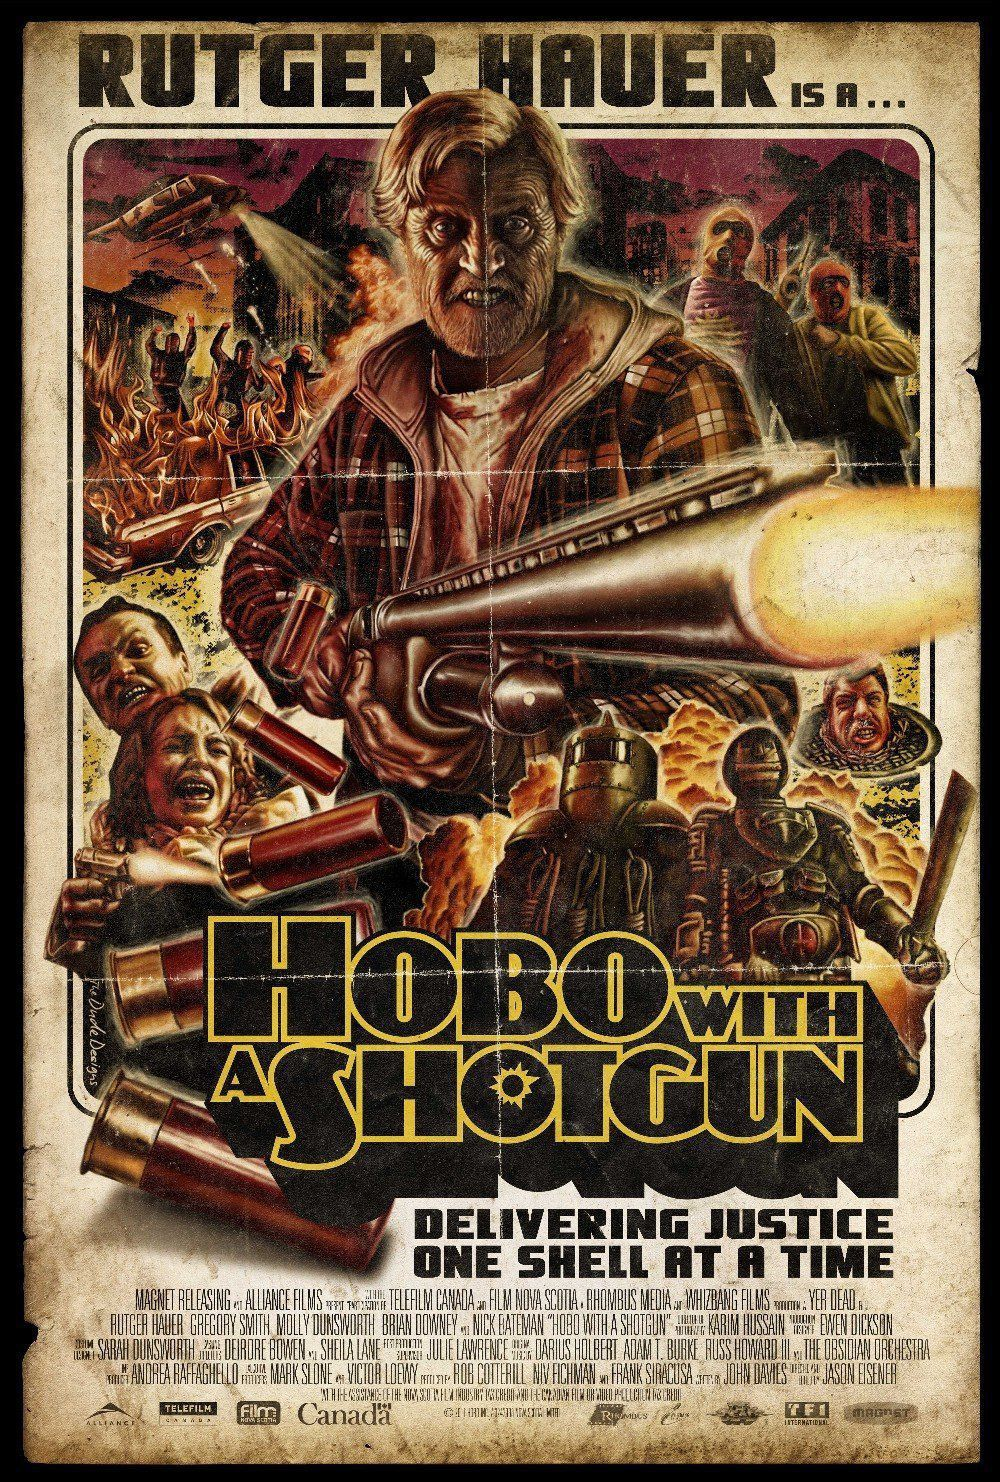 Hobo With A Shotgun (2011) avec Rutger Hauer, Molly Dunsworth, Brian Downey, Gregory Smith